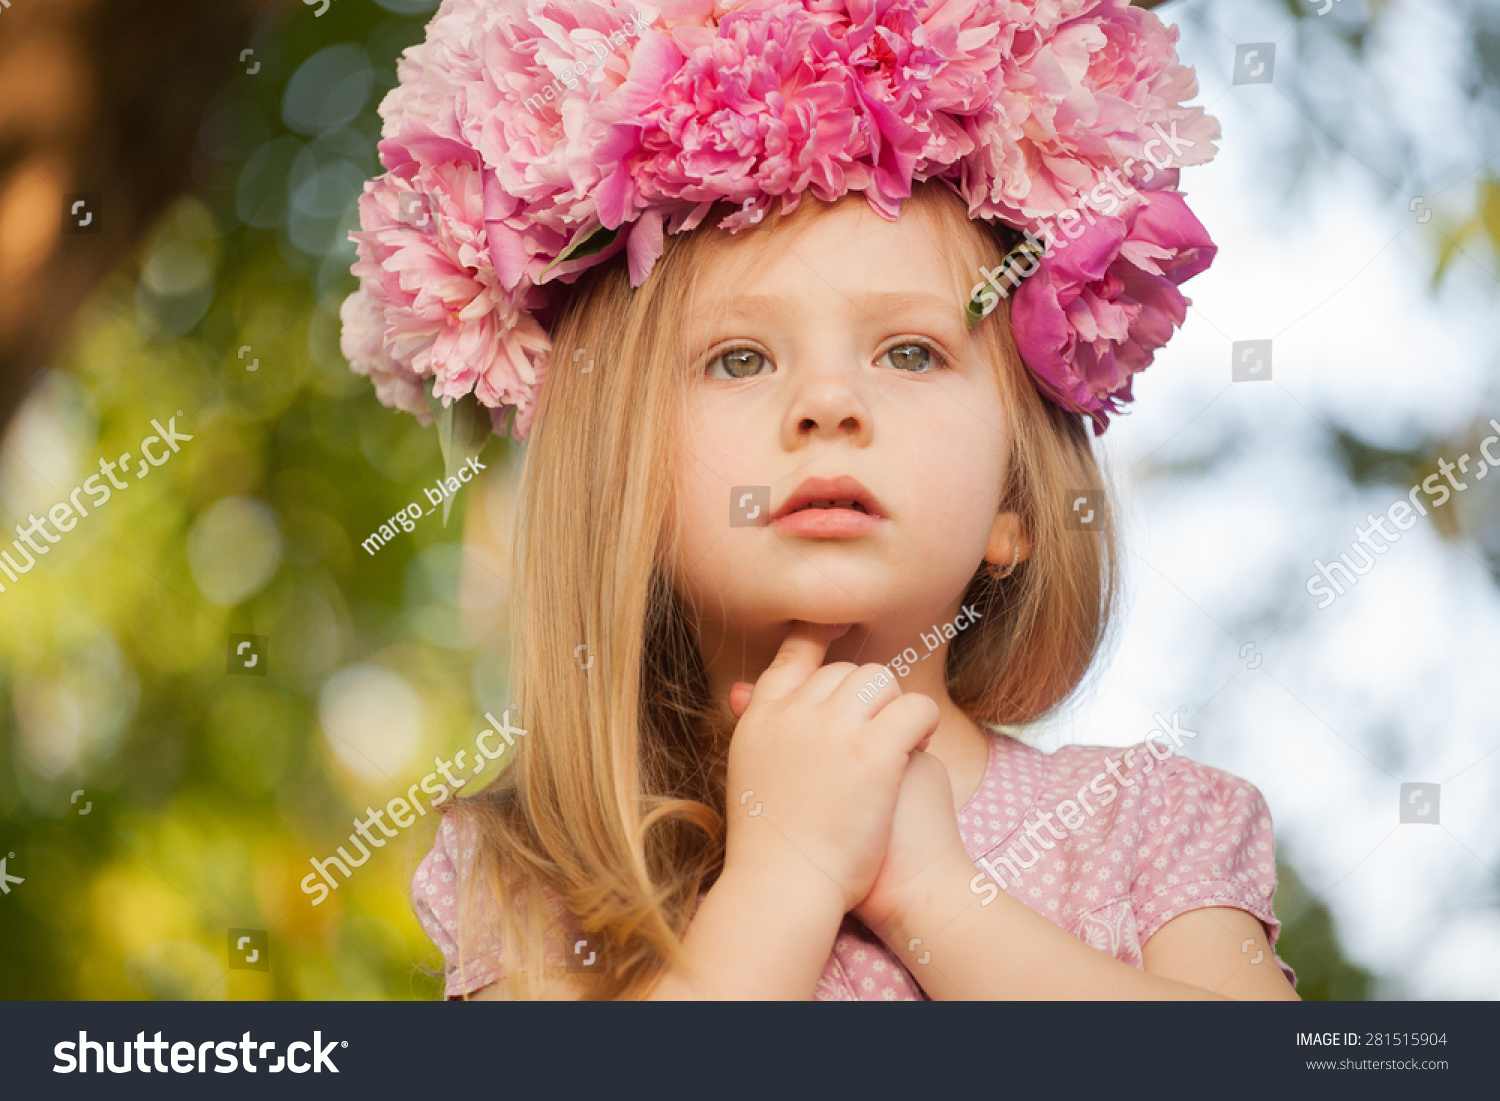 beautiful baby girl pink flowers outdoors stock photo (edit now